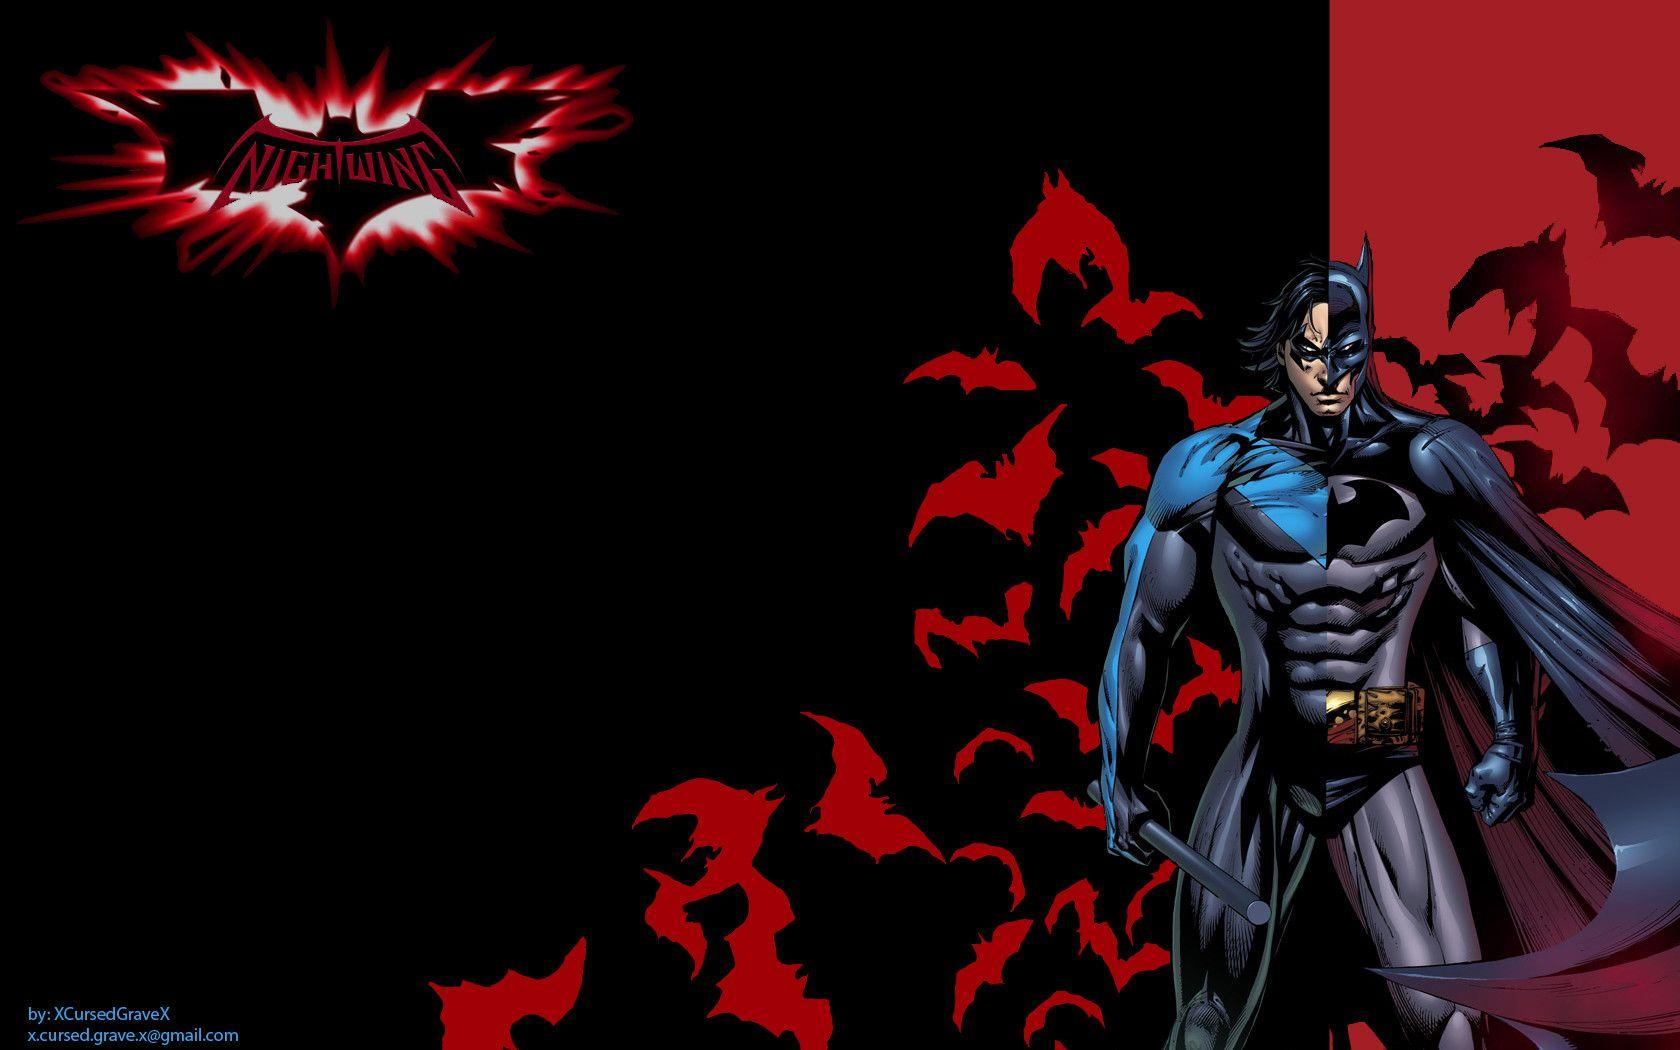 Nightwing Wallpapers - Wallpaper Cave